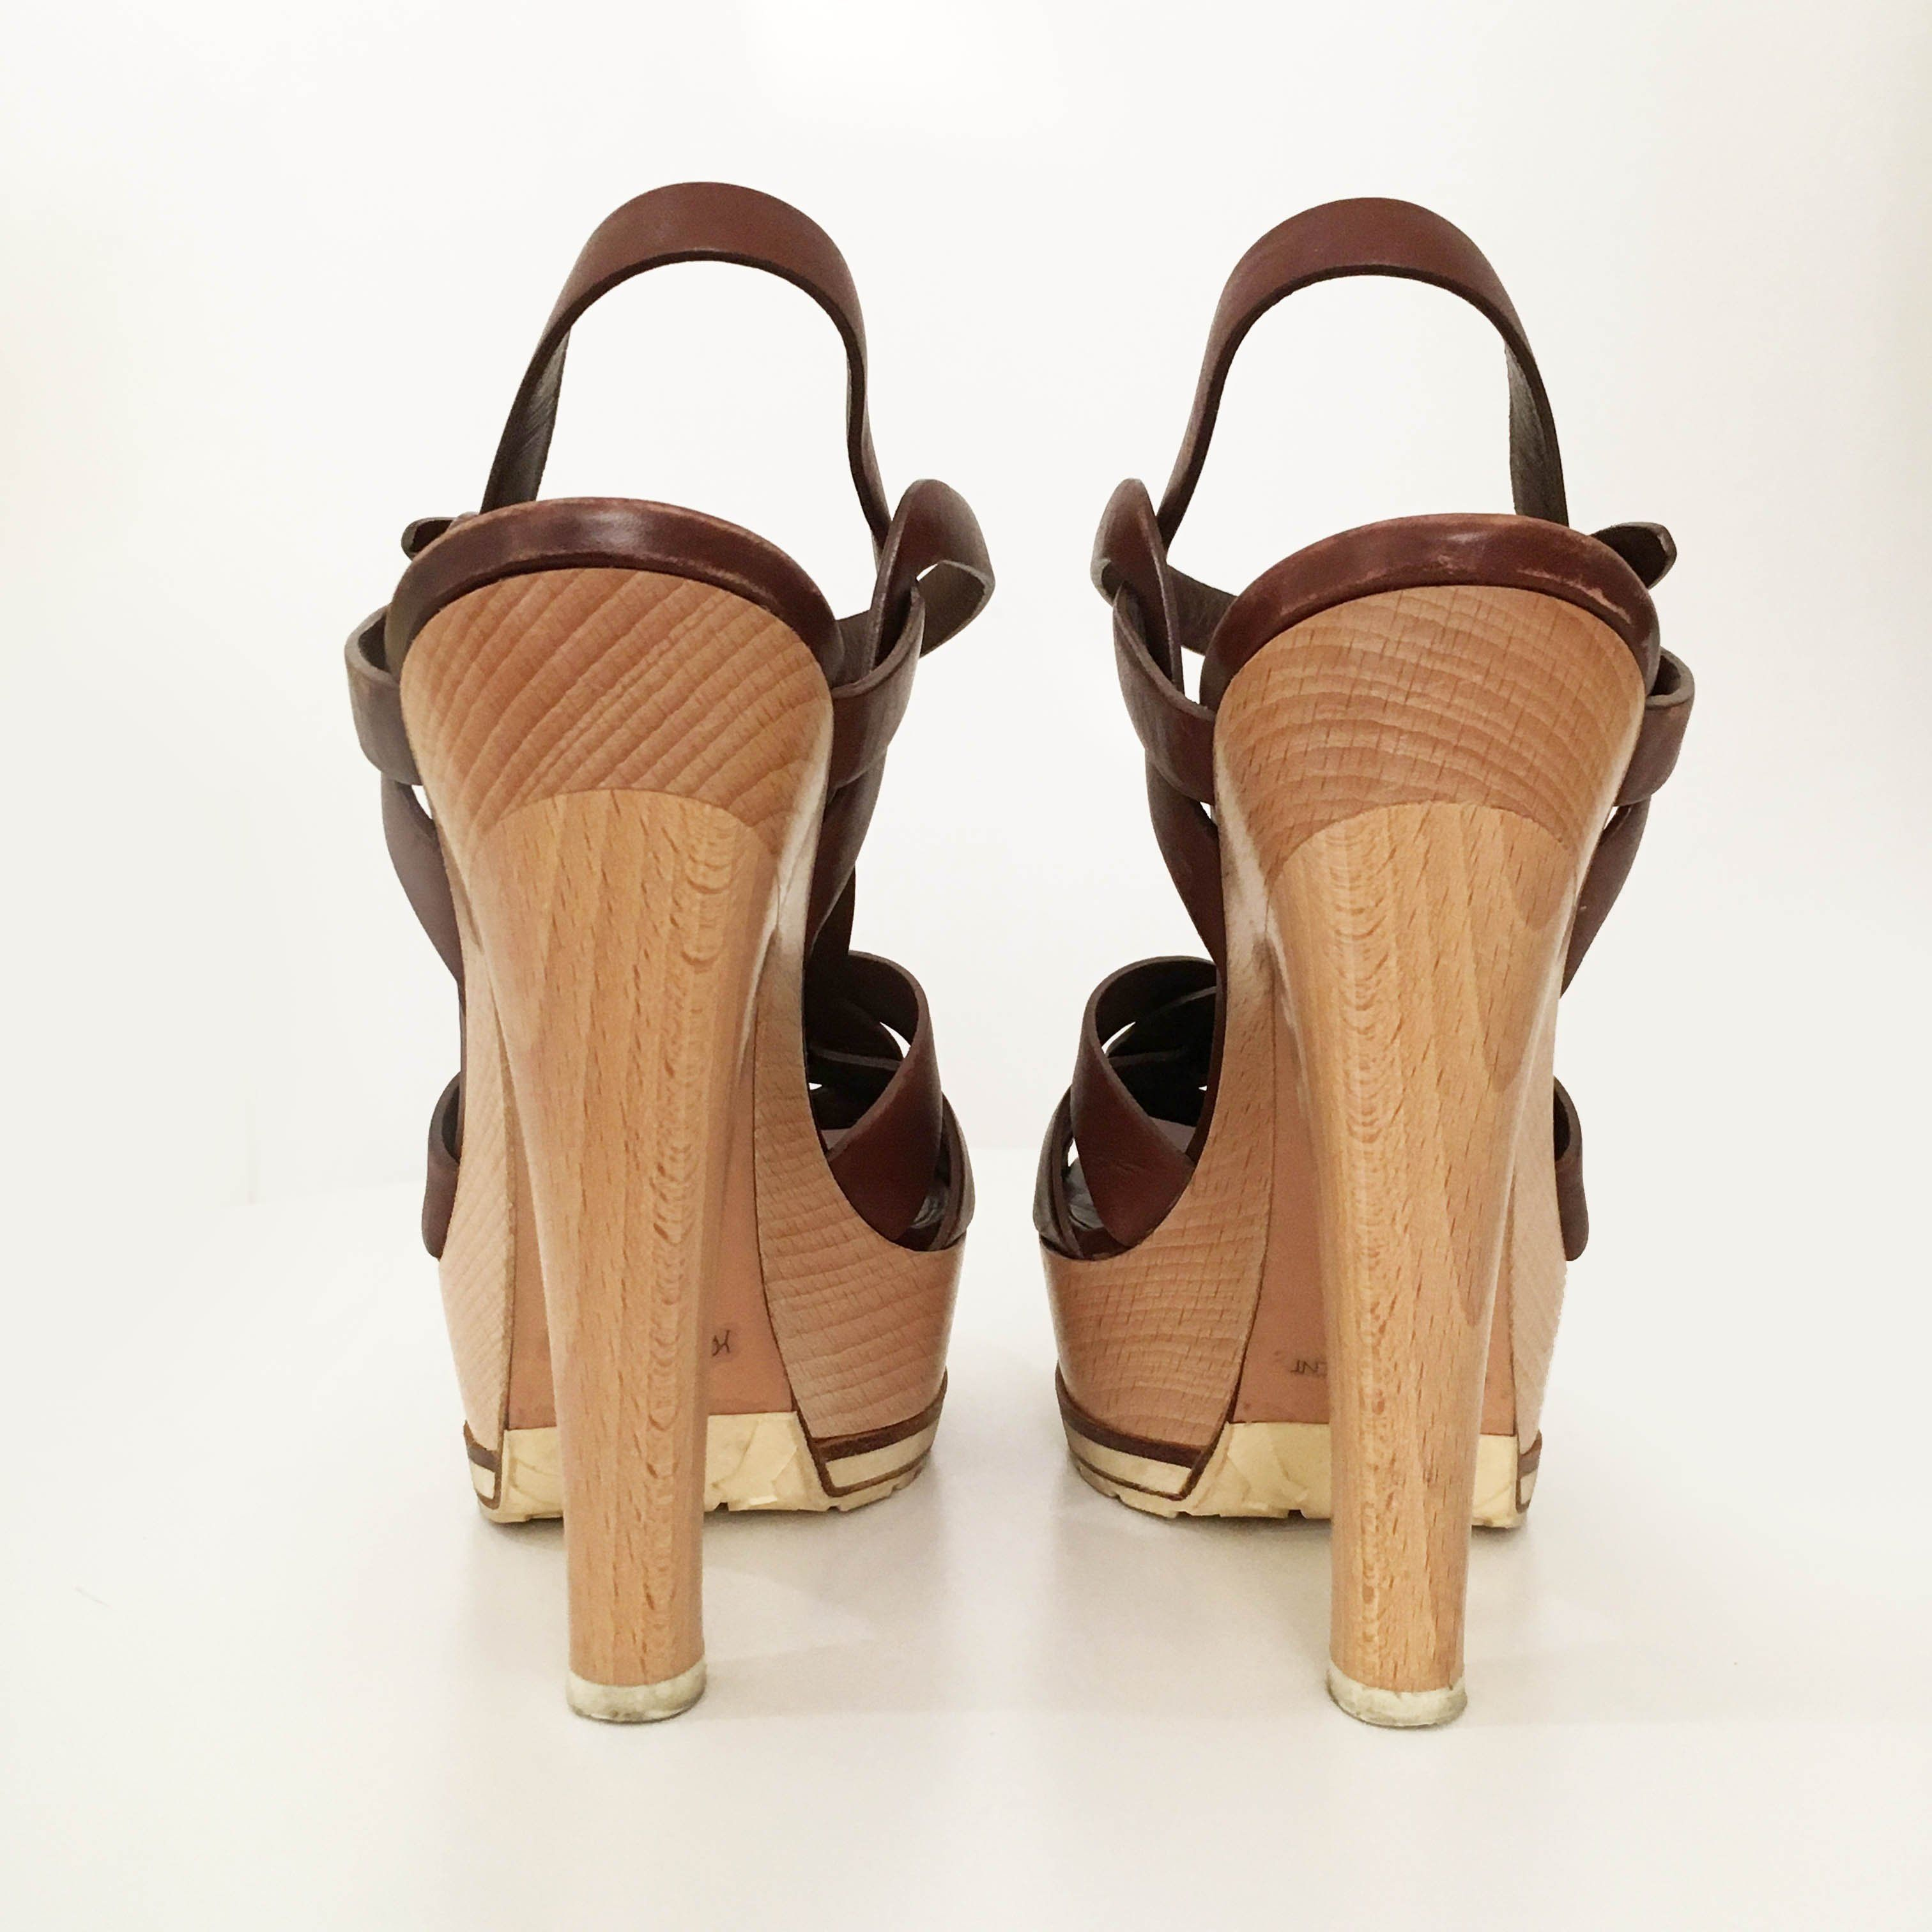 Saint Laurent Tribute Wood and Leather Heels